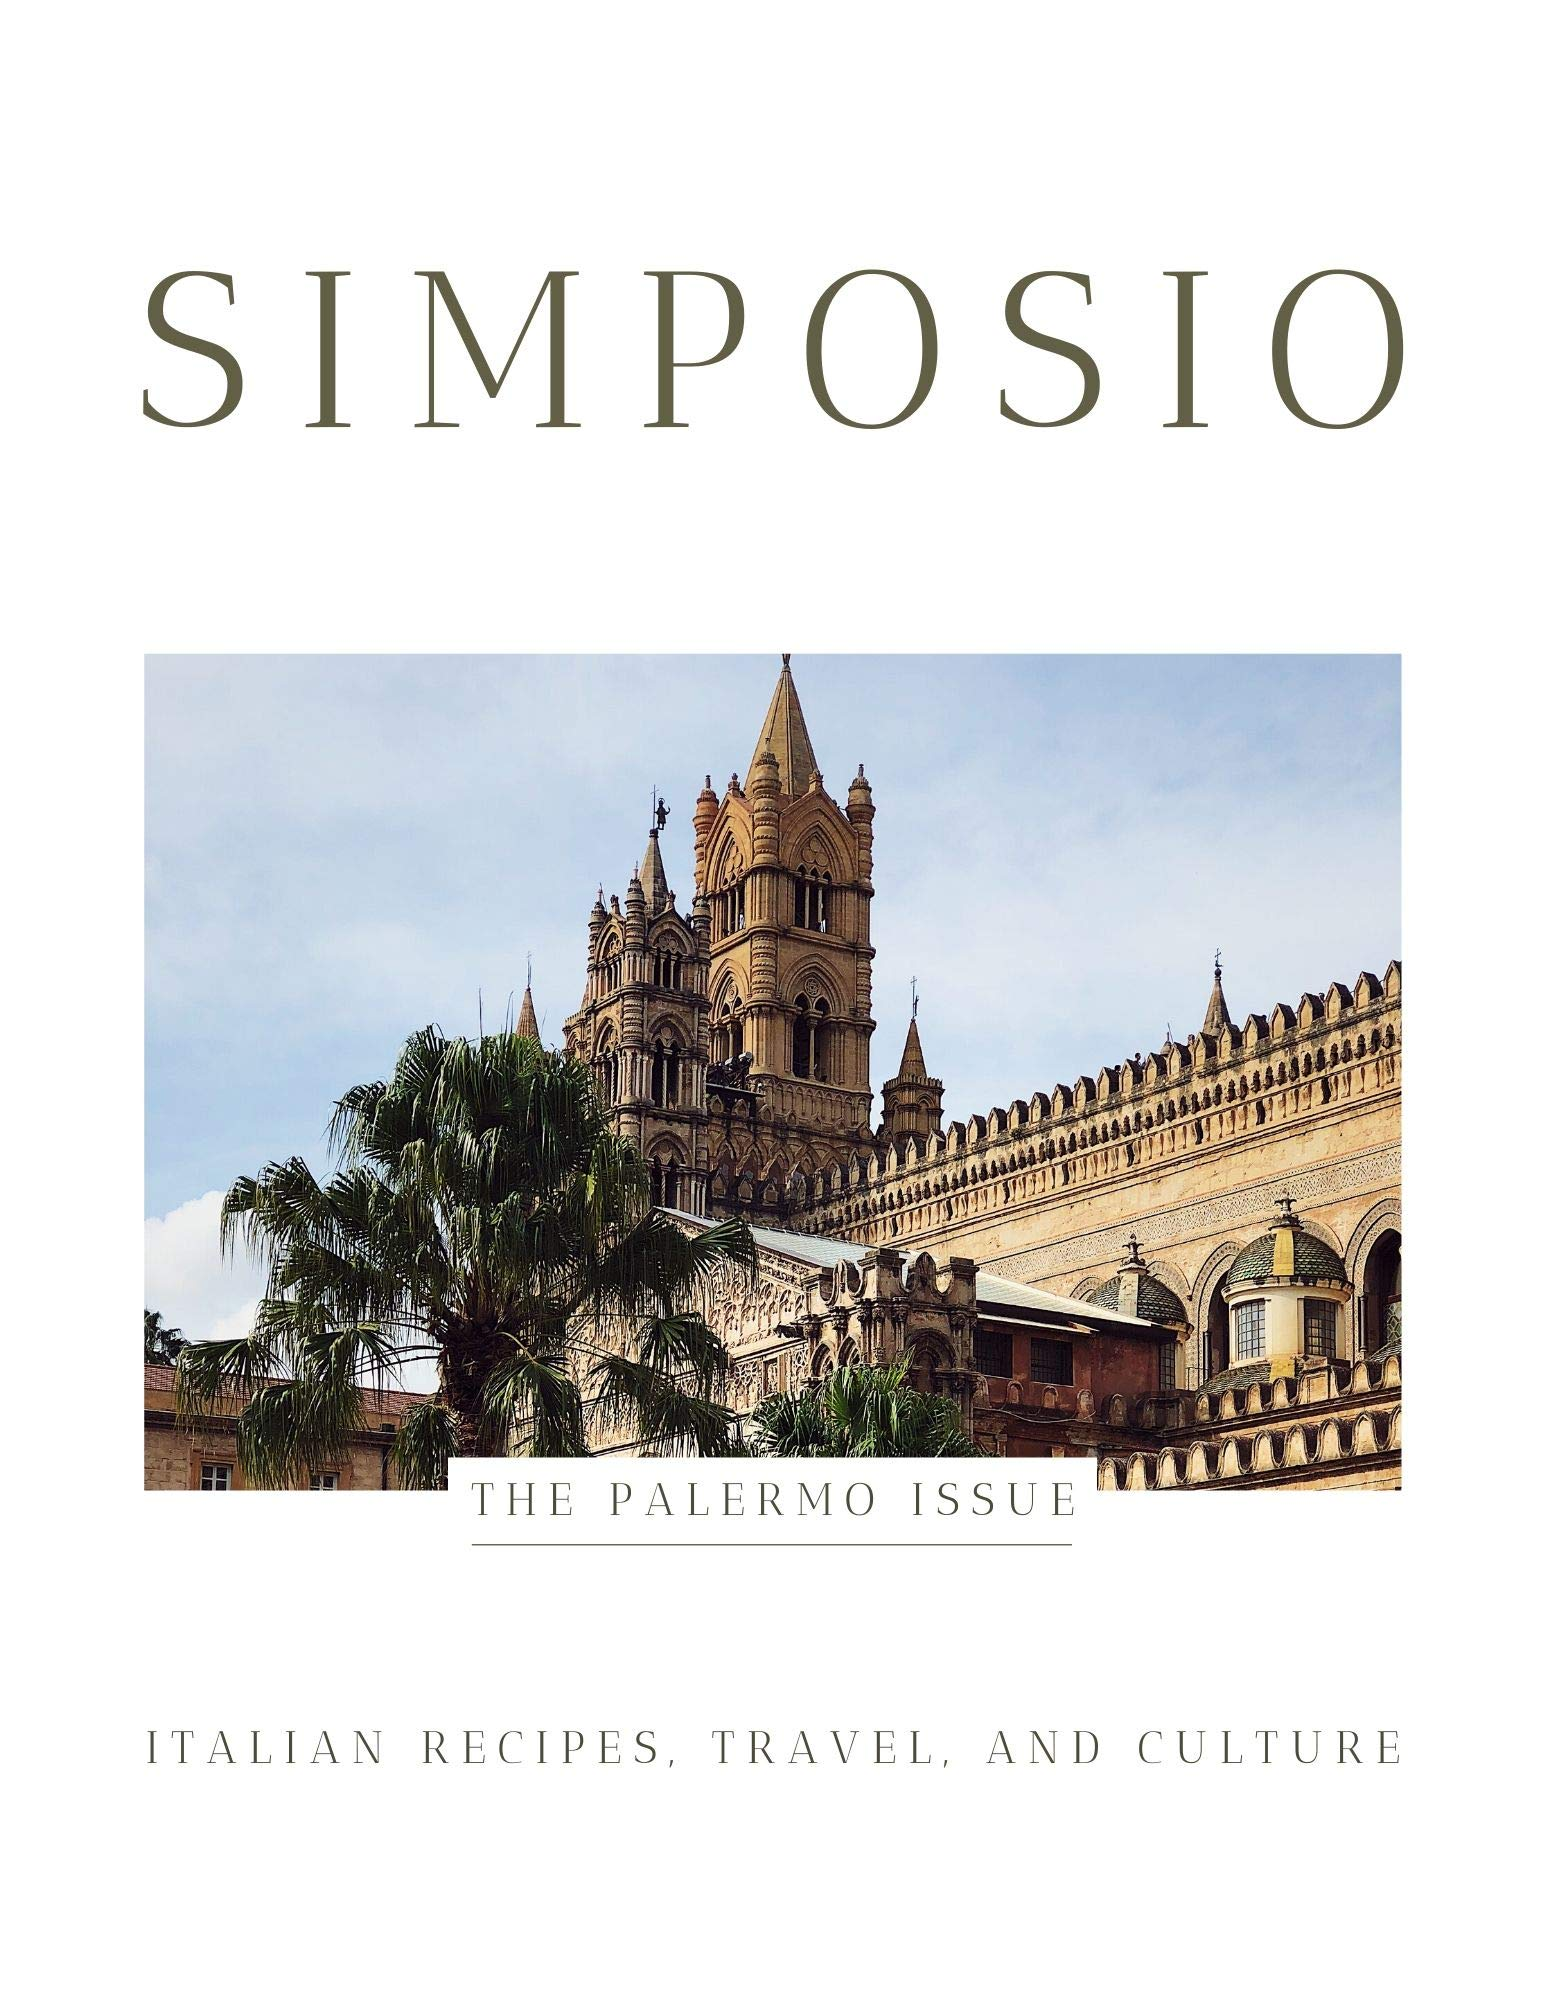 SIMPOSIO / The Palermo Issue: Italian Recipes, Travel, And Culture